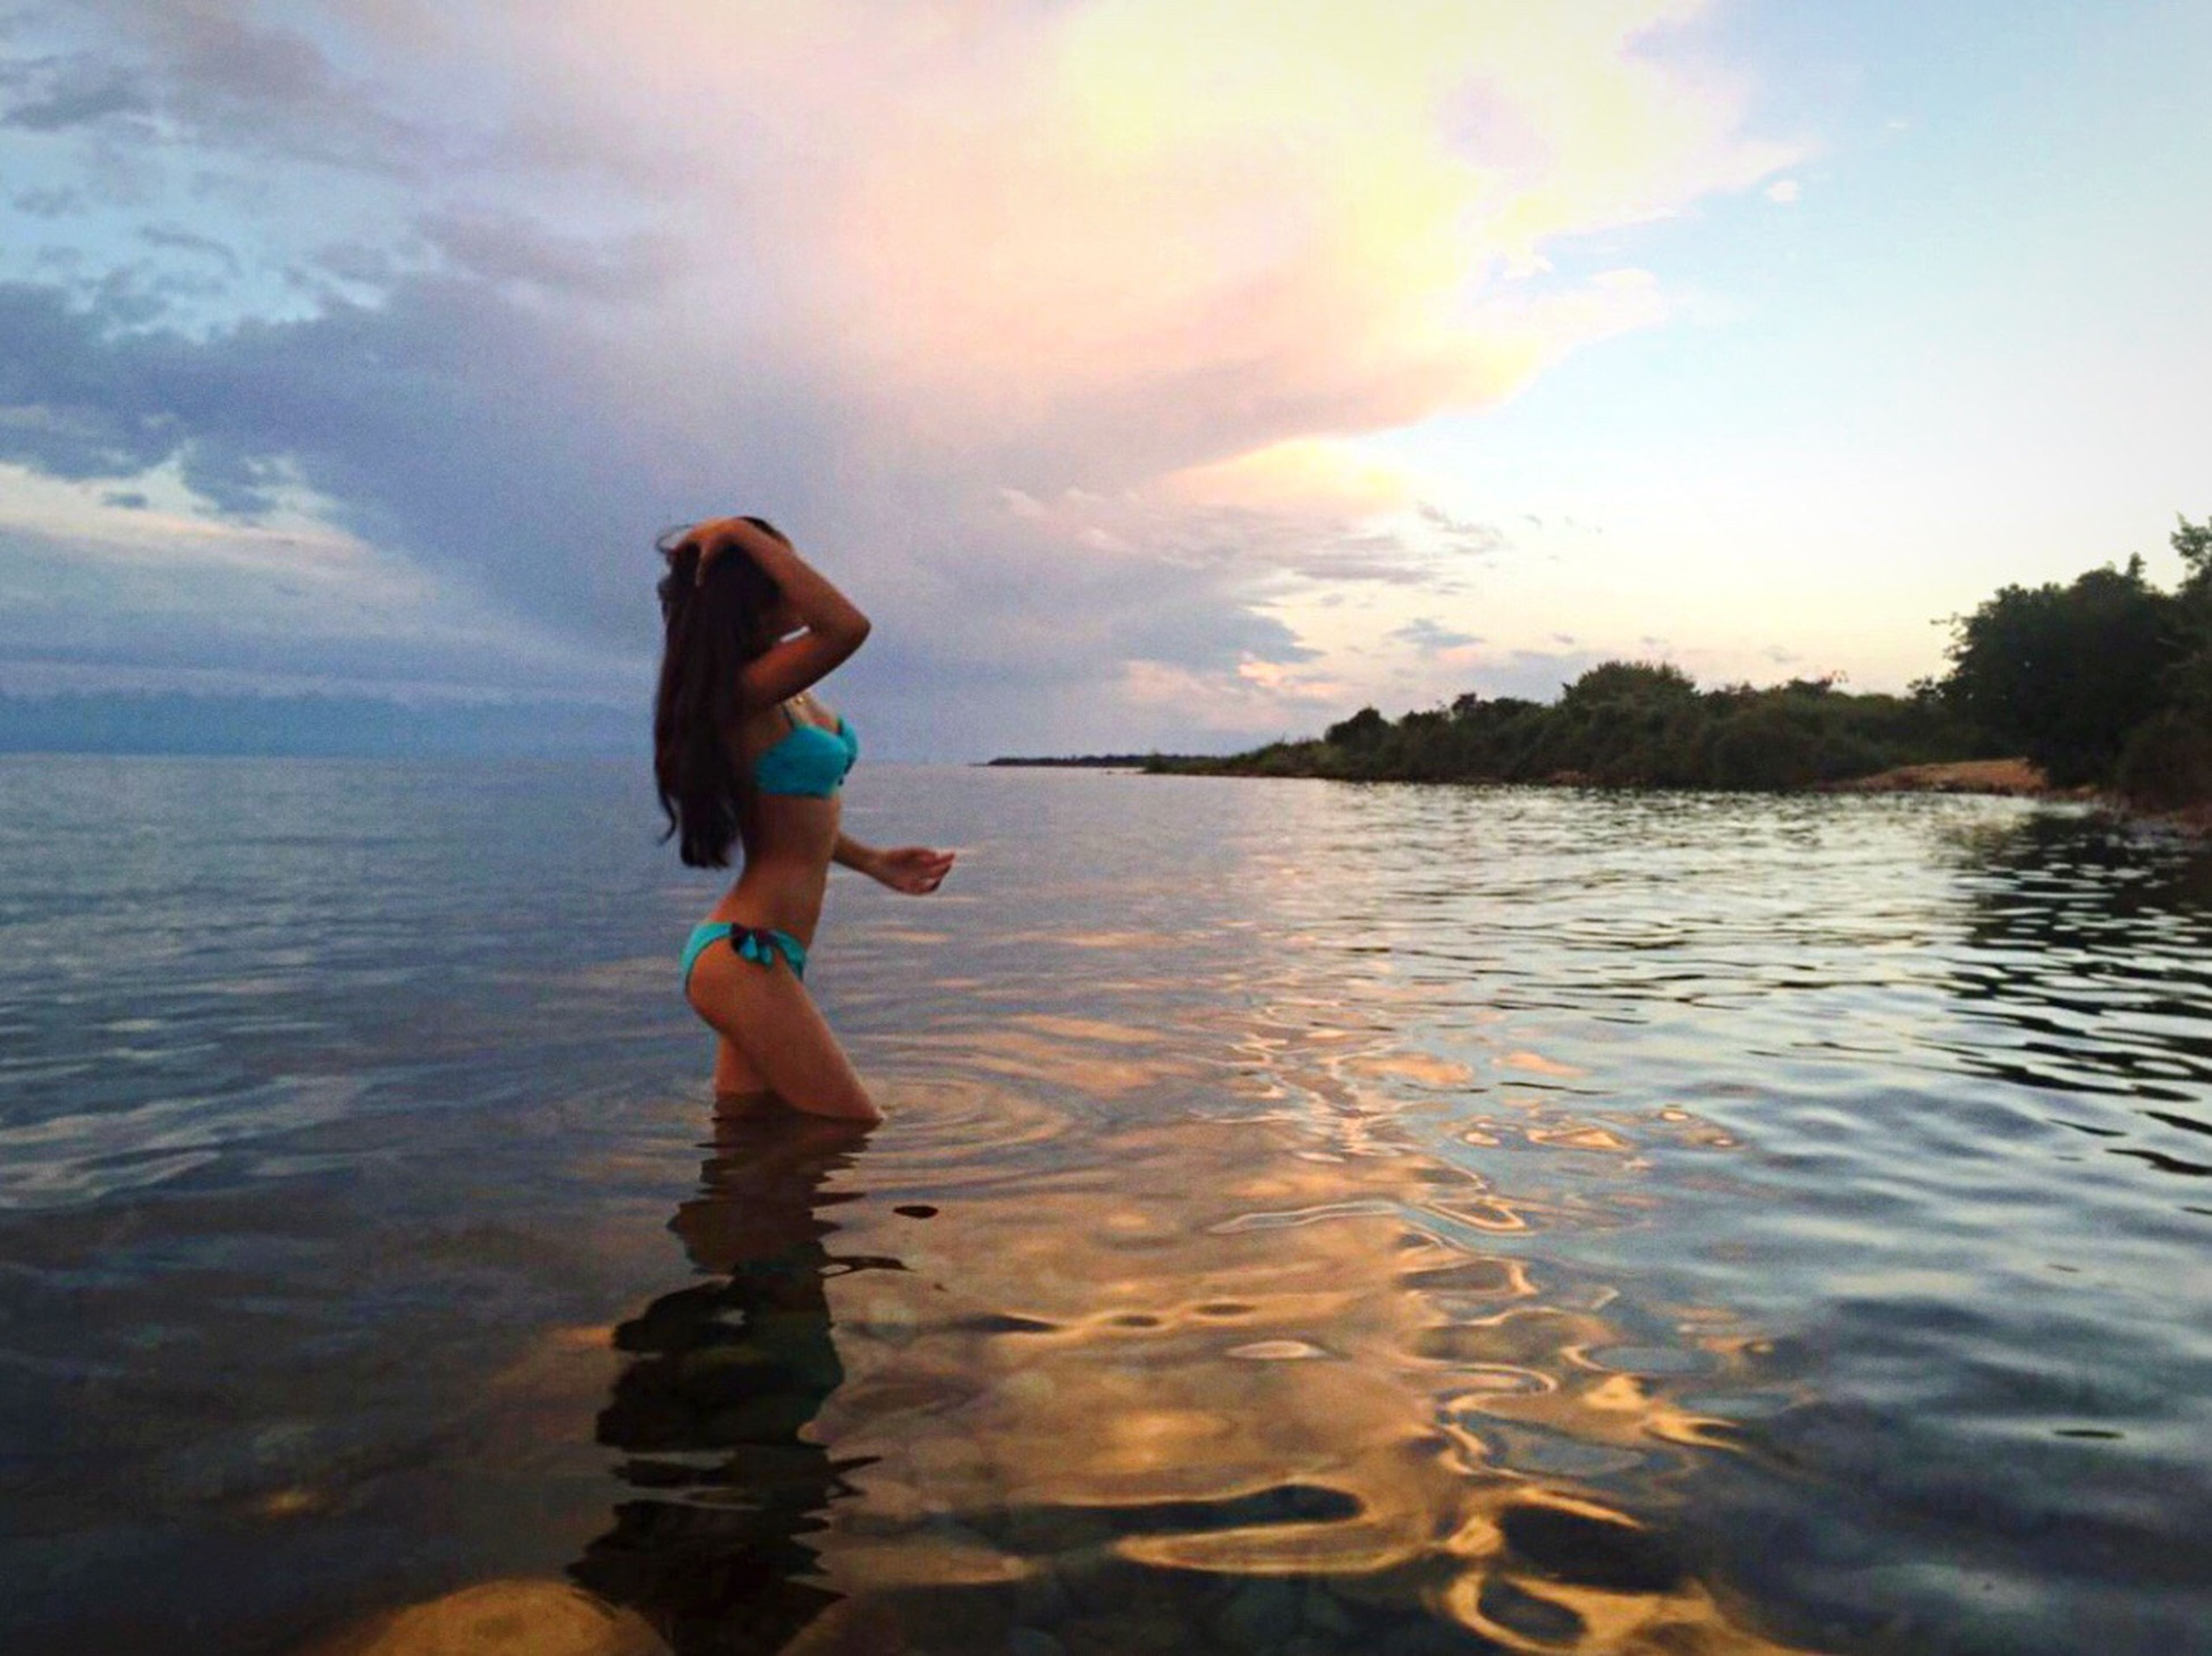 water, full length, lifestyles, sky, sunset, leisure activity, scenics, sea, side view, cloud - sky, childhood, person, beauty in nature, fun, nature, casual clothing, tranquility, tranquil scene, vacations, carefree, enjoyment, waterfront, non-urban scene